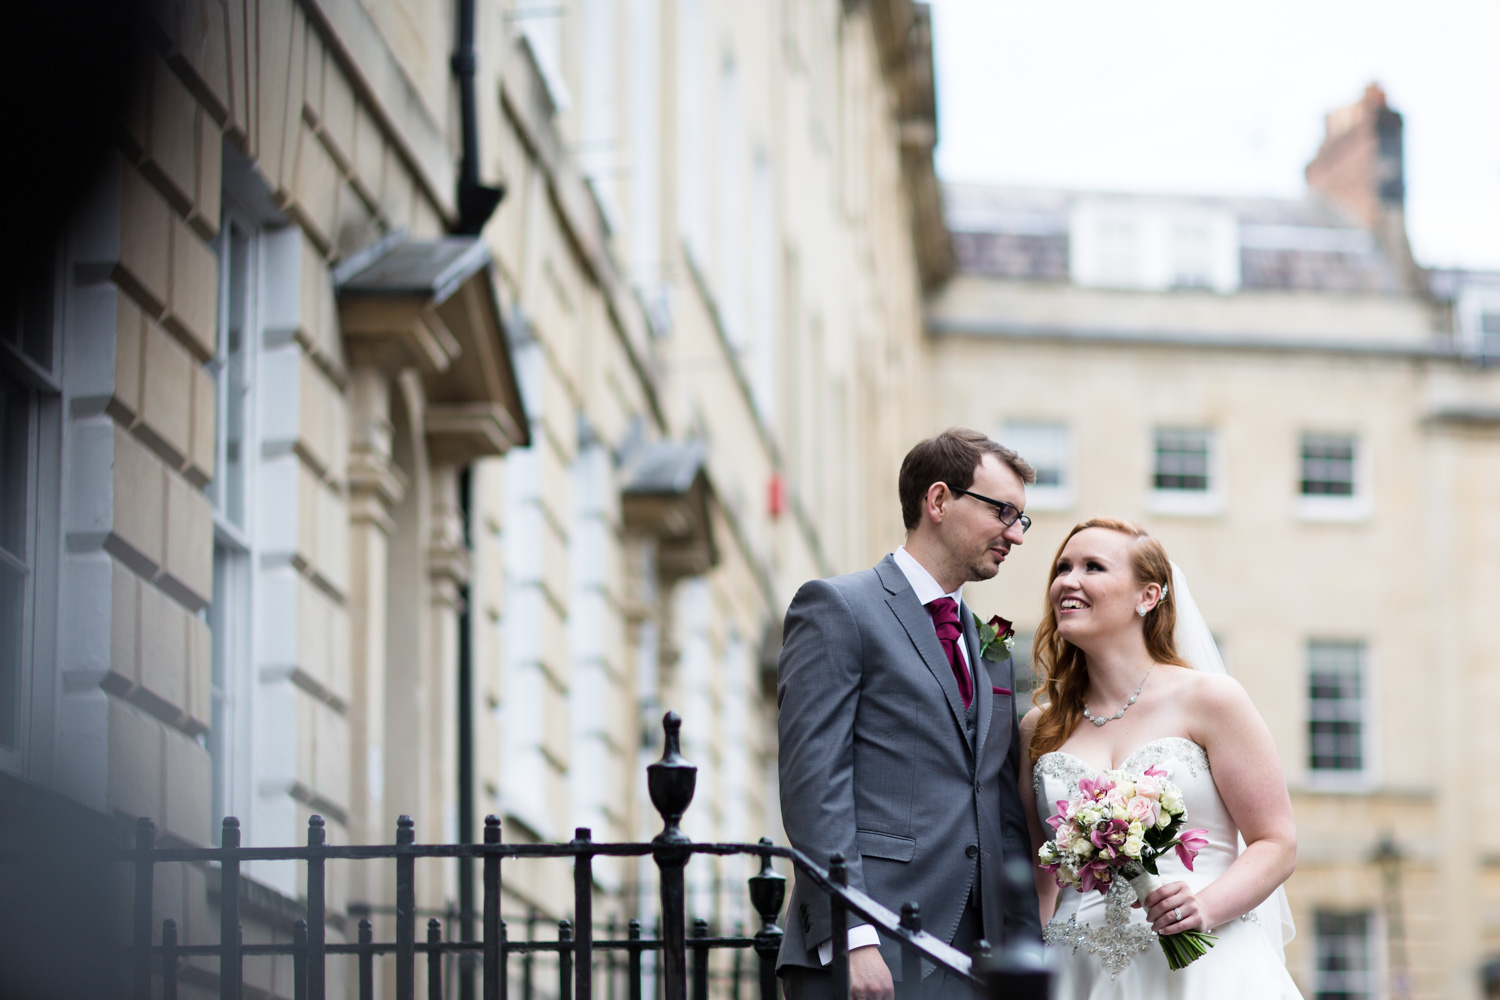 Mark_Barnes_Bristol_Wedding_Photographer_The_Square_Hotel_Bristol_wedding_photography-41.jpg